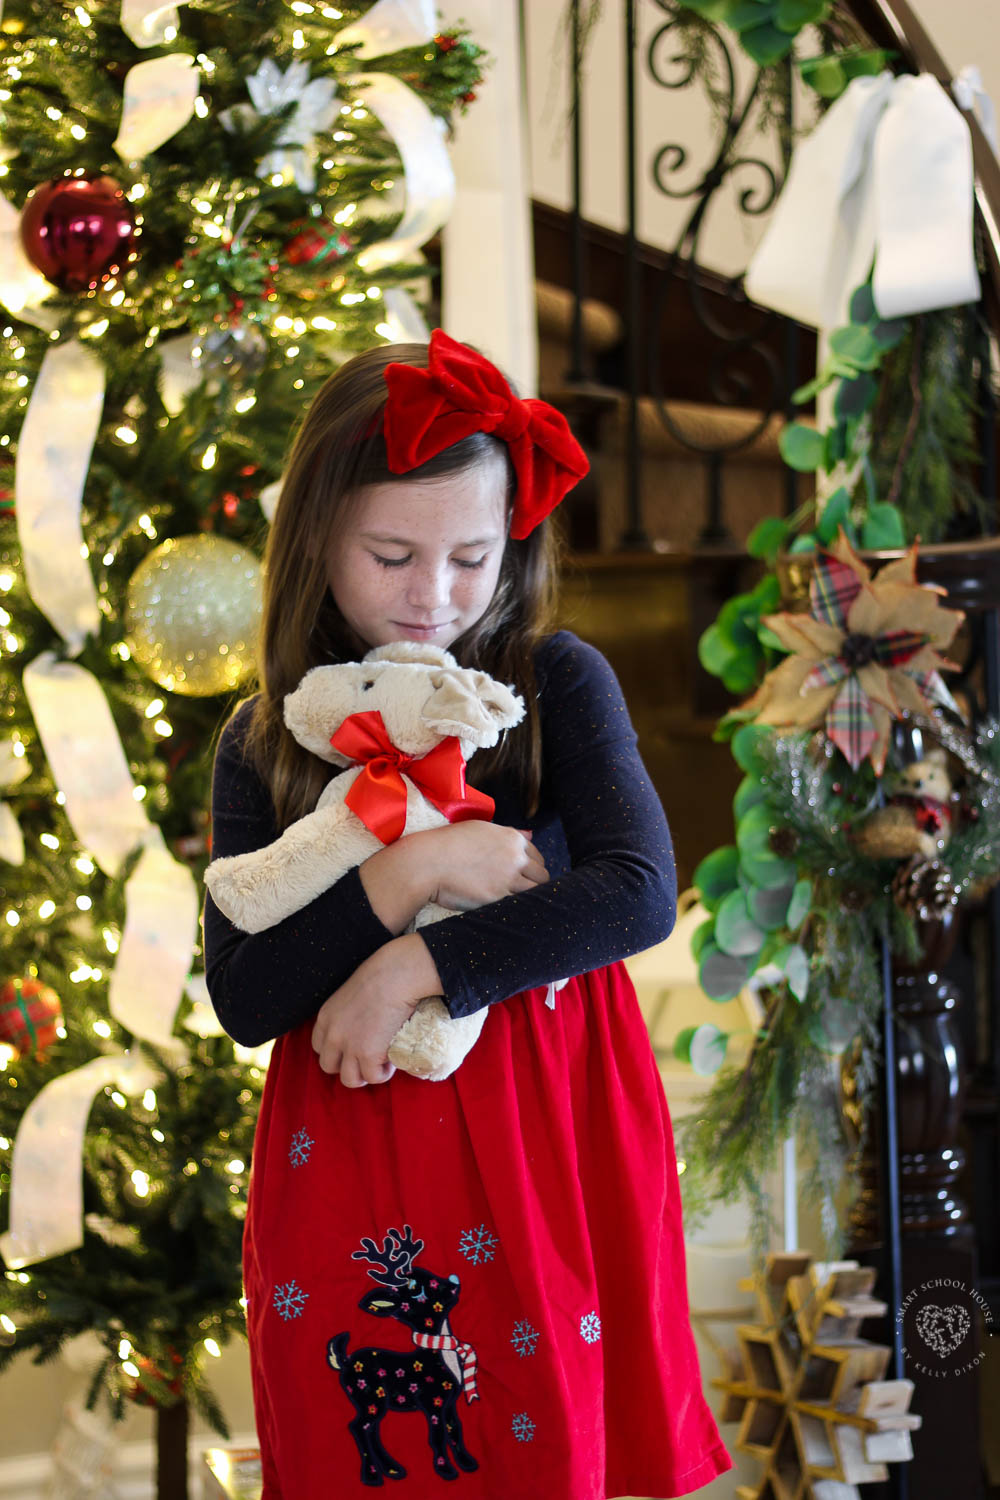 ADORABLE Melissa & Doug Christmas puppy stuffed animal from Kohl's #KohlsToys #KohlsFinds #AD